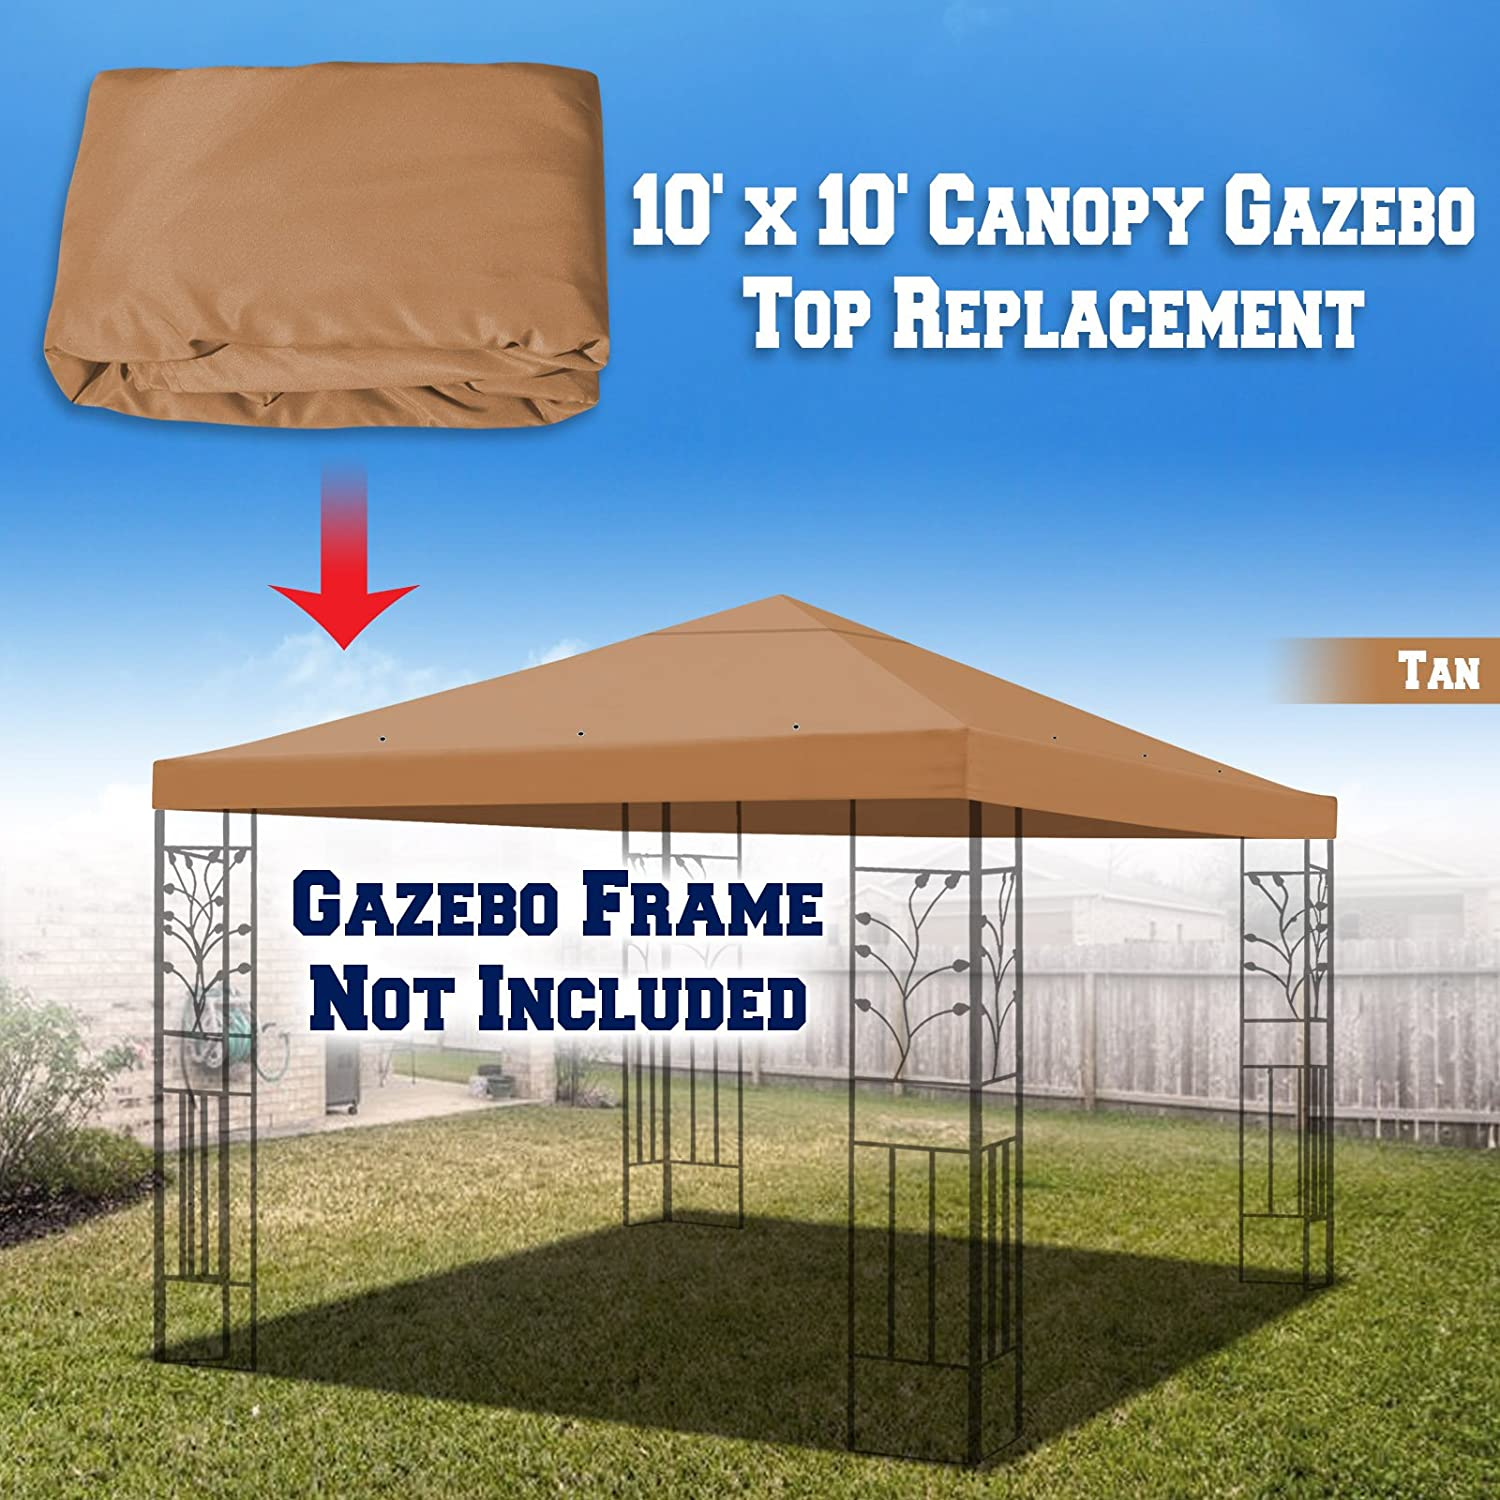 BenefitUSA 10'X10' Replacement Top Gazebo Canopy Cover Patio Pavilion Sunshade Plyester single tier (Beige) vendorG245-BEG